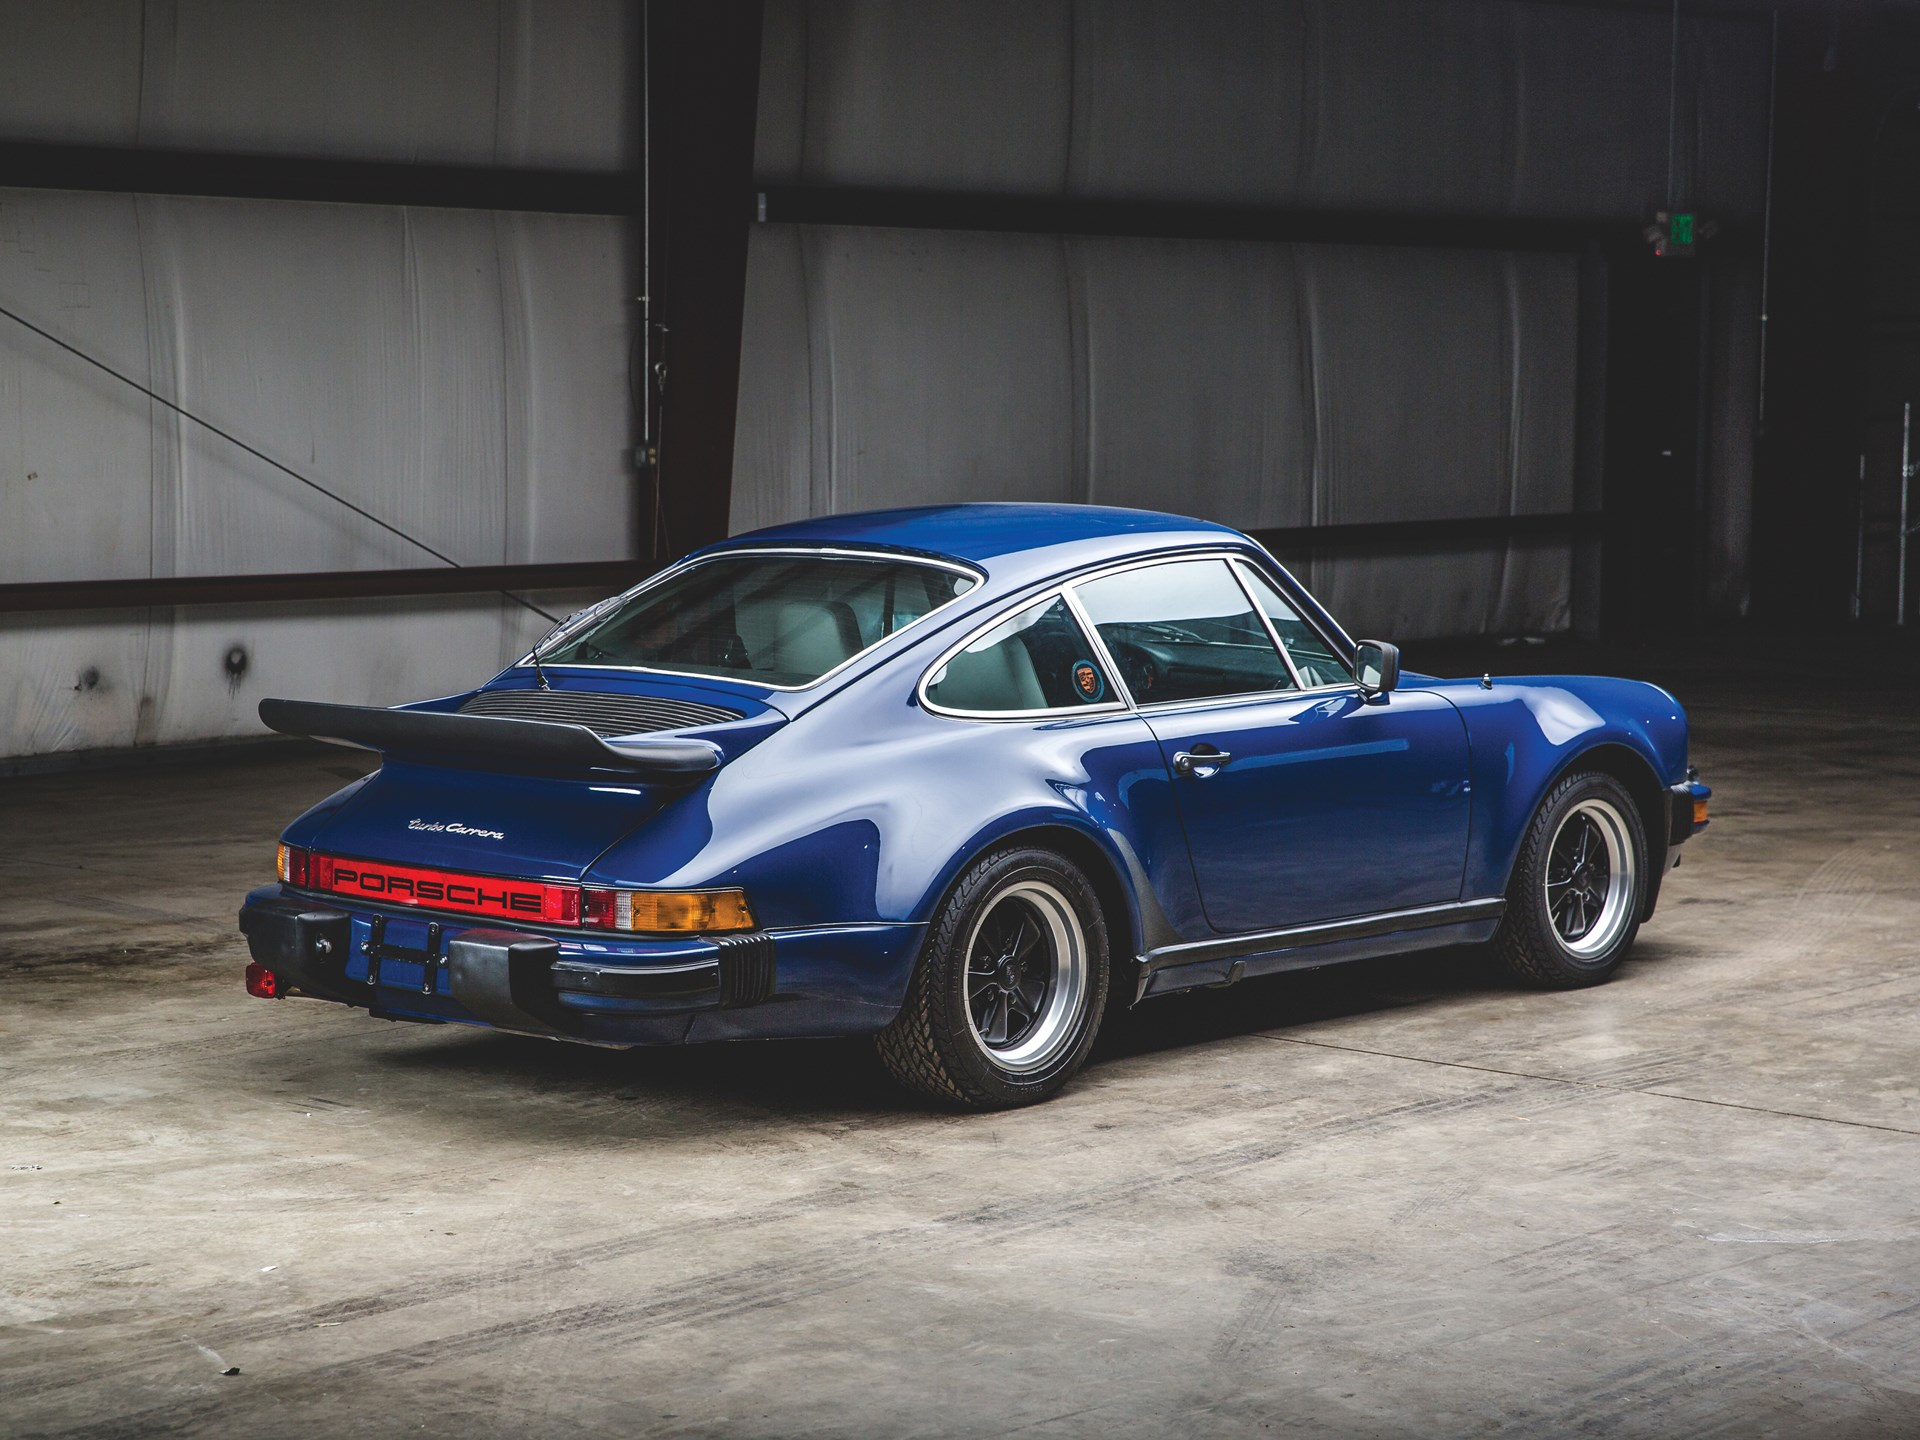 1976 Porsche 911 Carrera Turbo